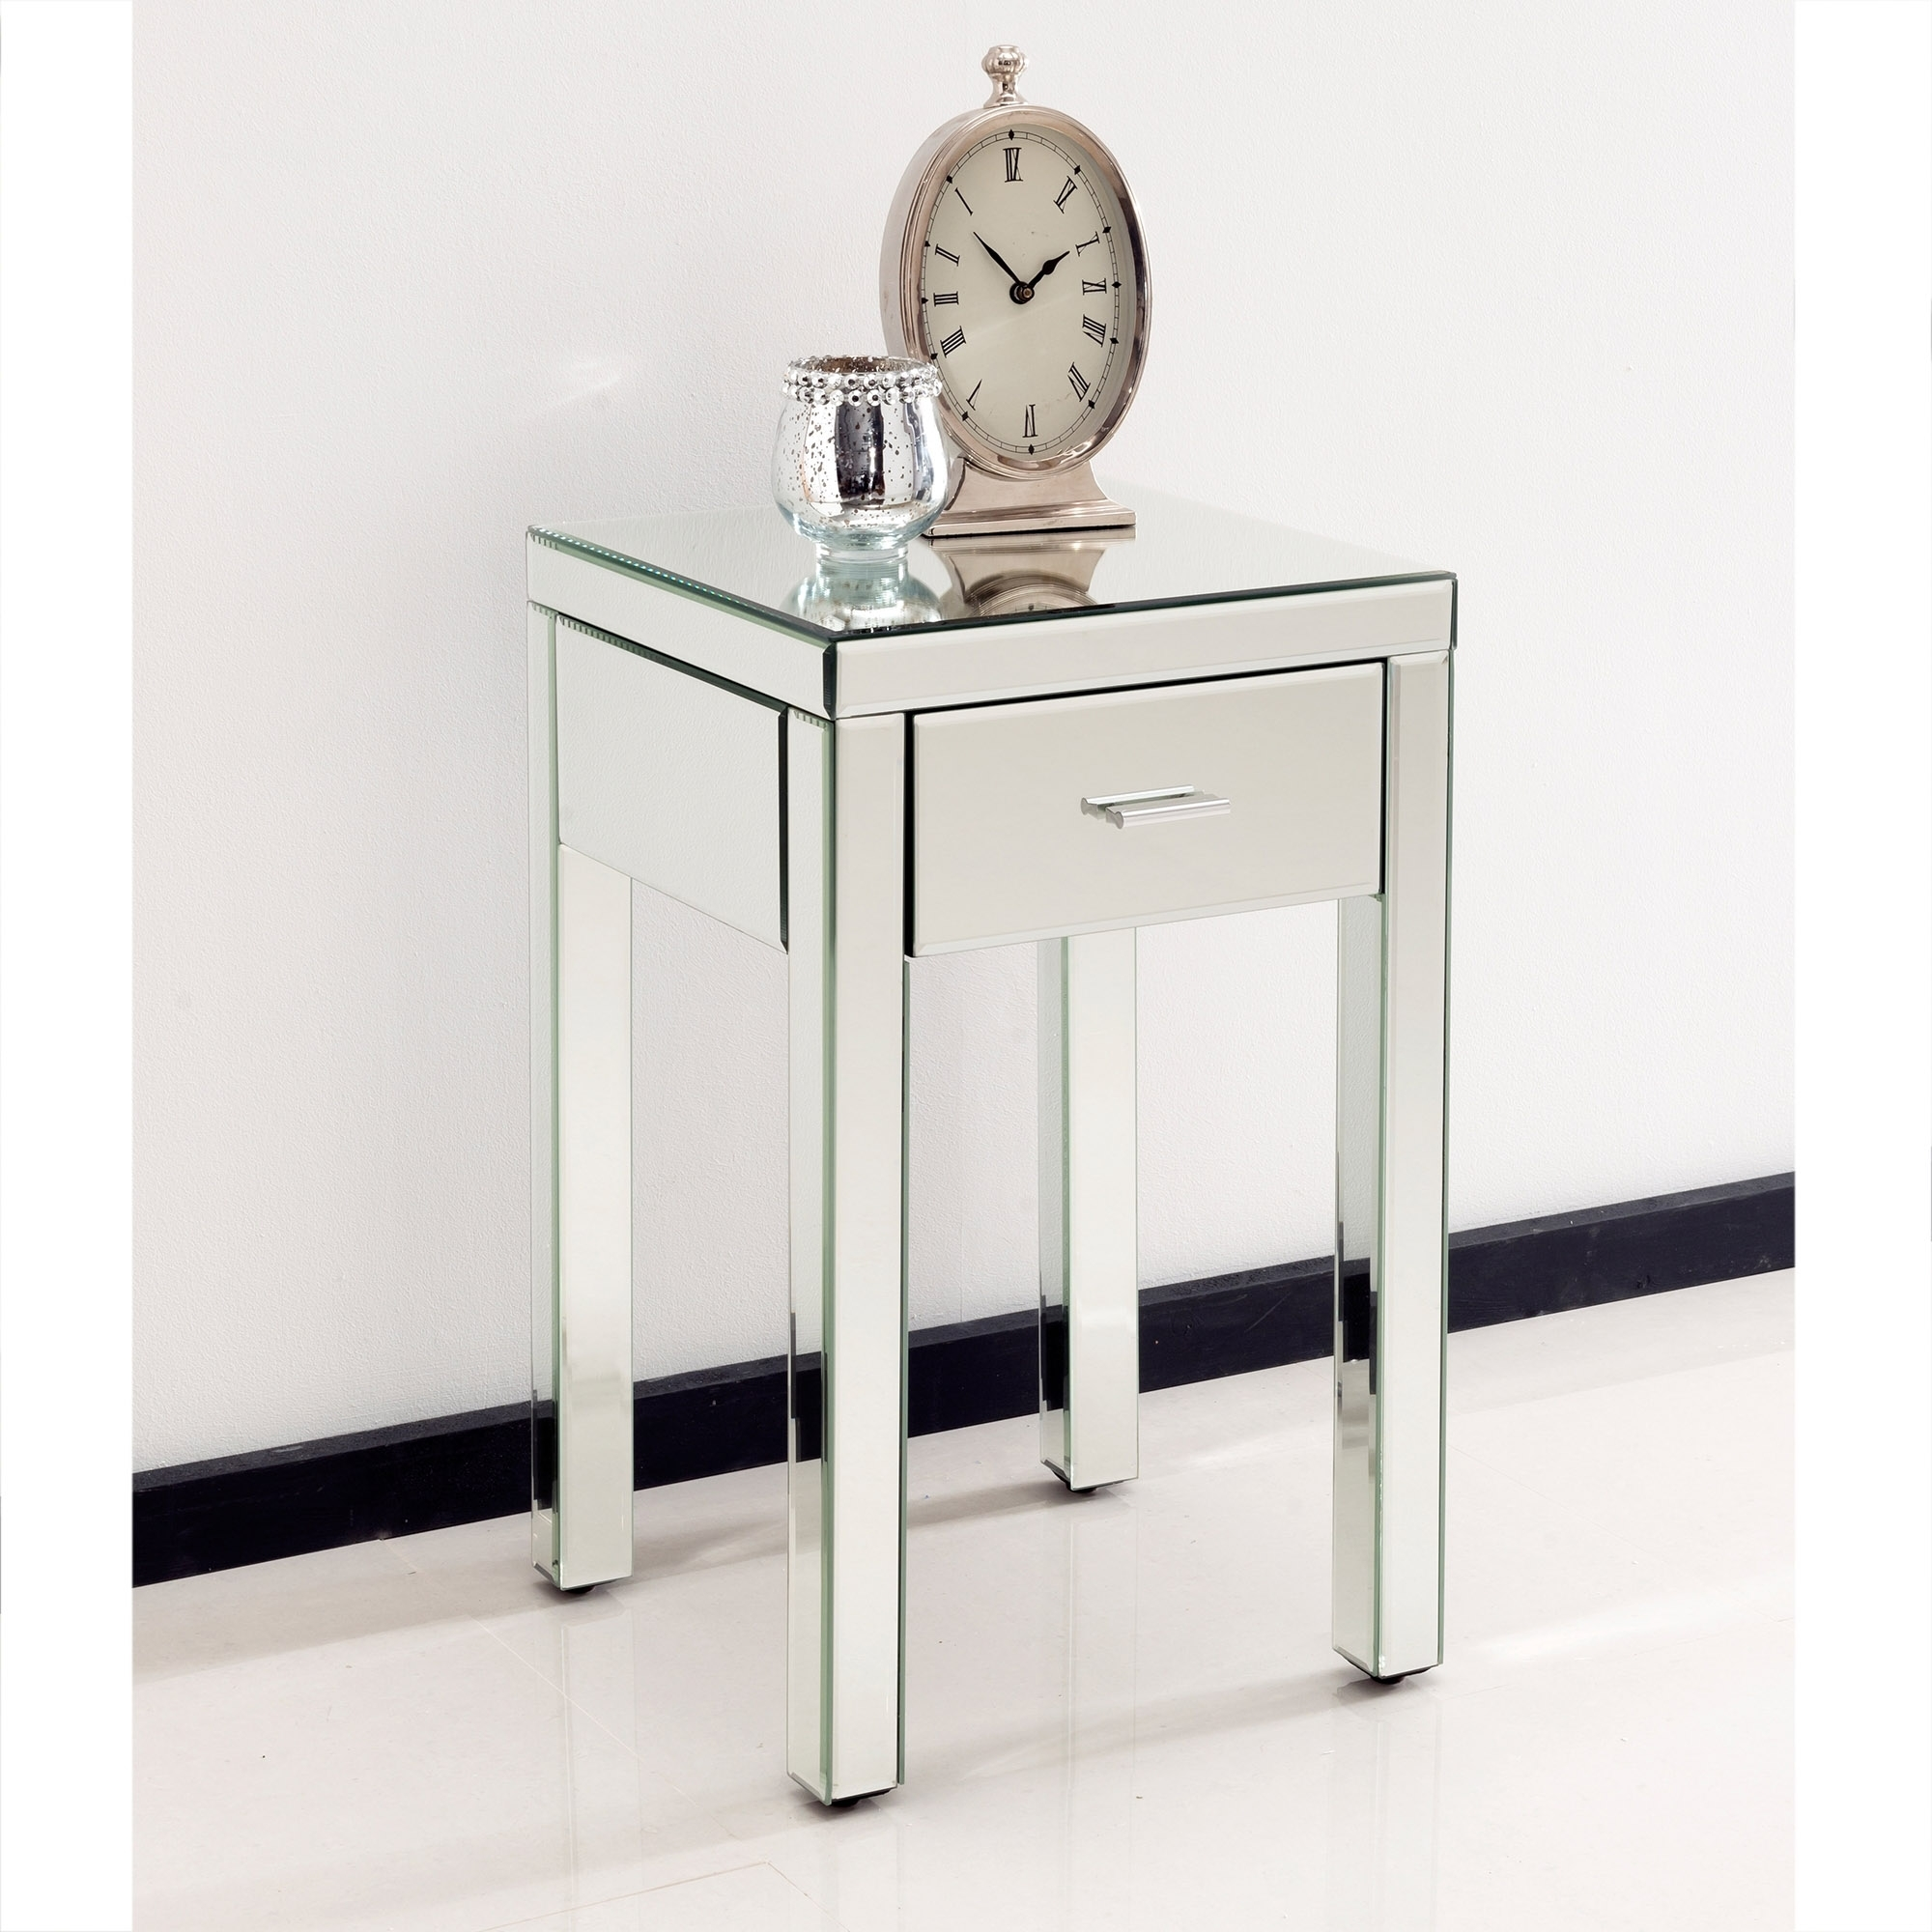 Venetian bedside table for Mirror bedside cabinets